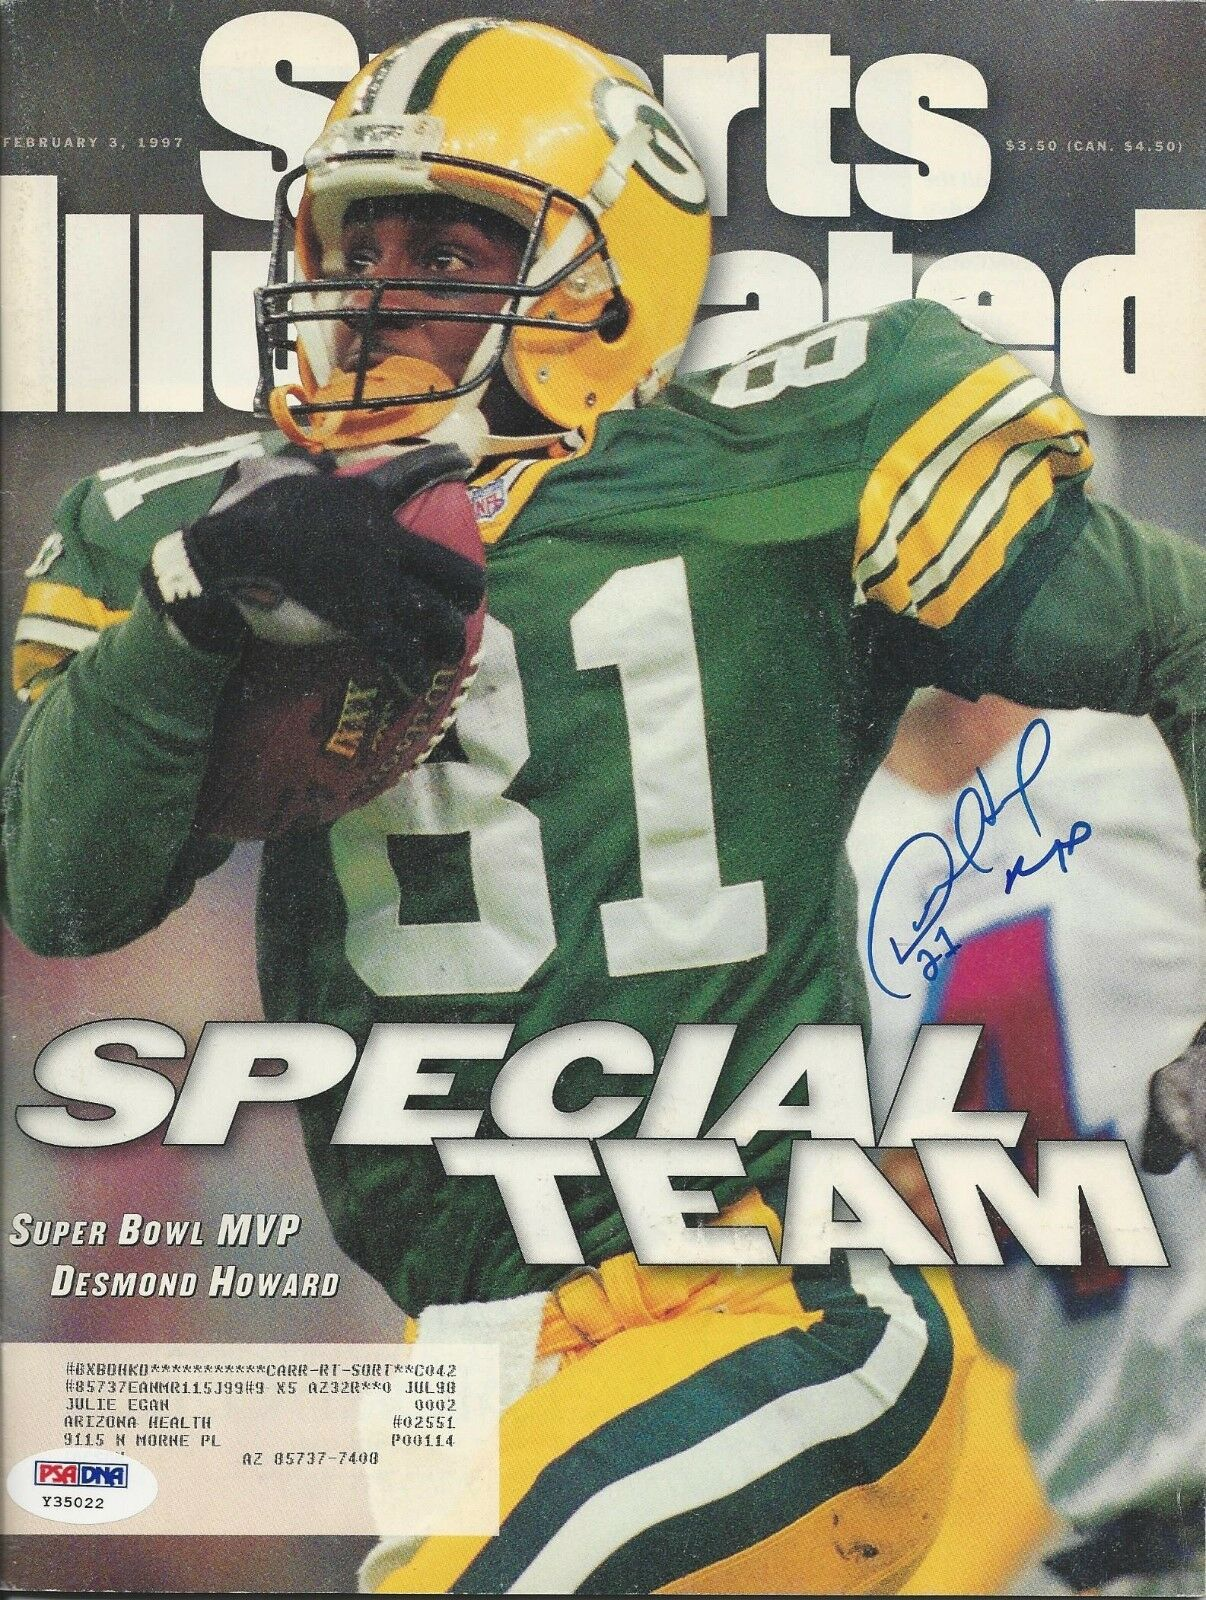 Desmond Howard Green Bay Packers Signed Magazine - PSA/DNA # Y35022